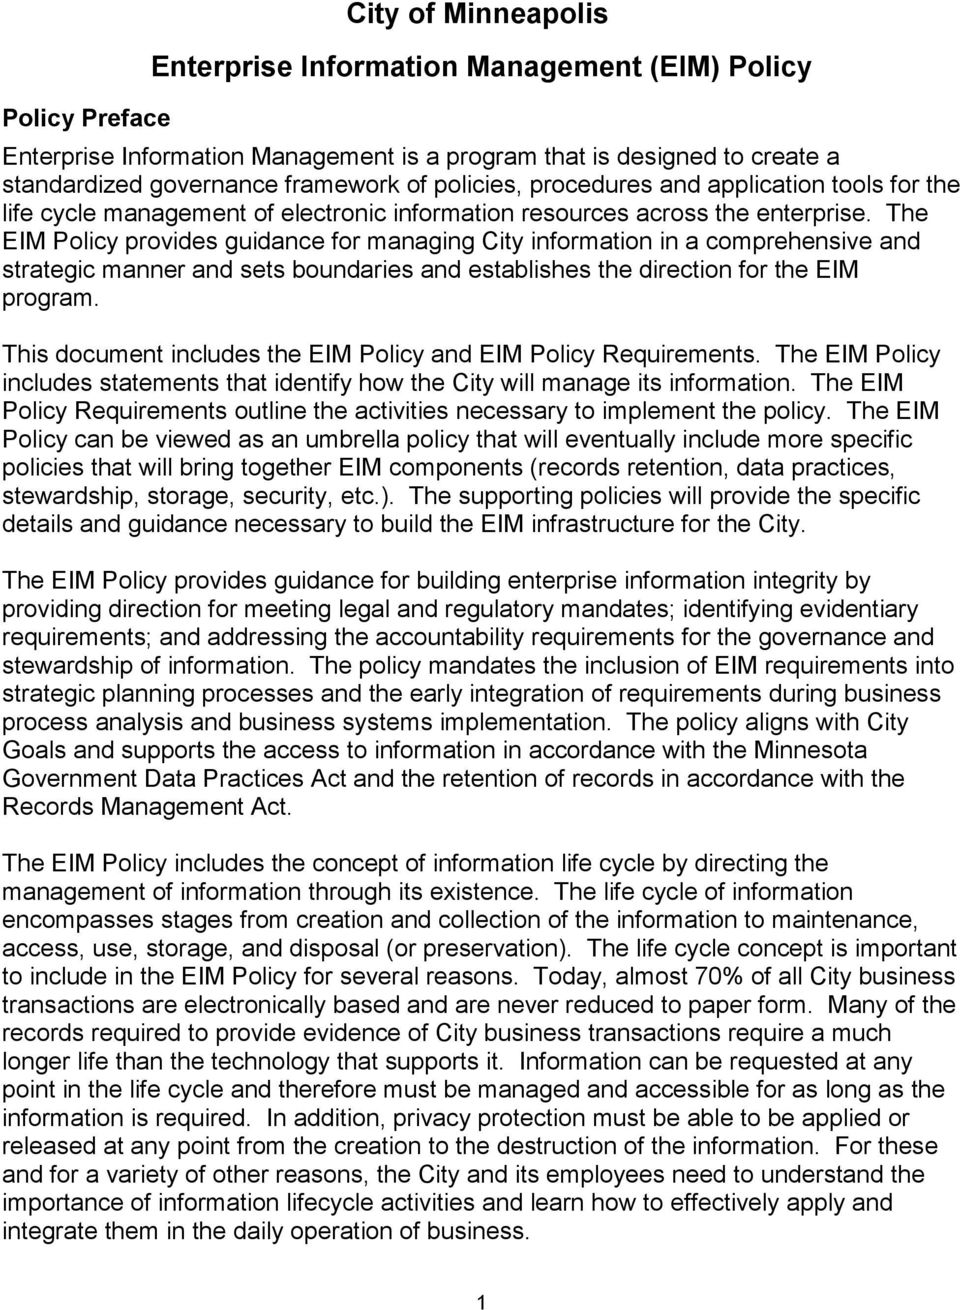 The EIM Policy provides guidance for managing City information in a comprehensive and strategic manner and sets boundaries and establishes the direction for the EIM program.